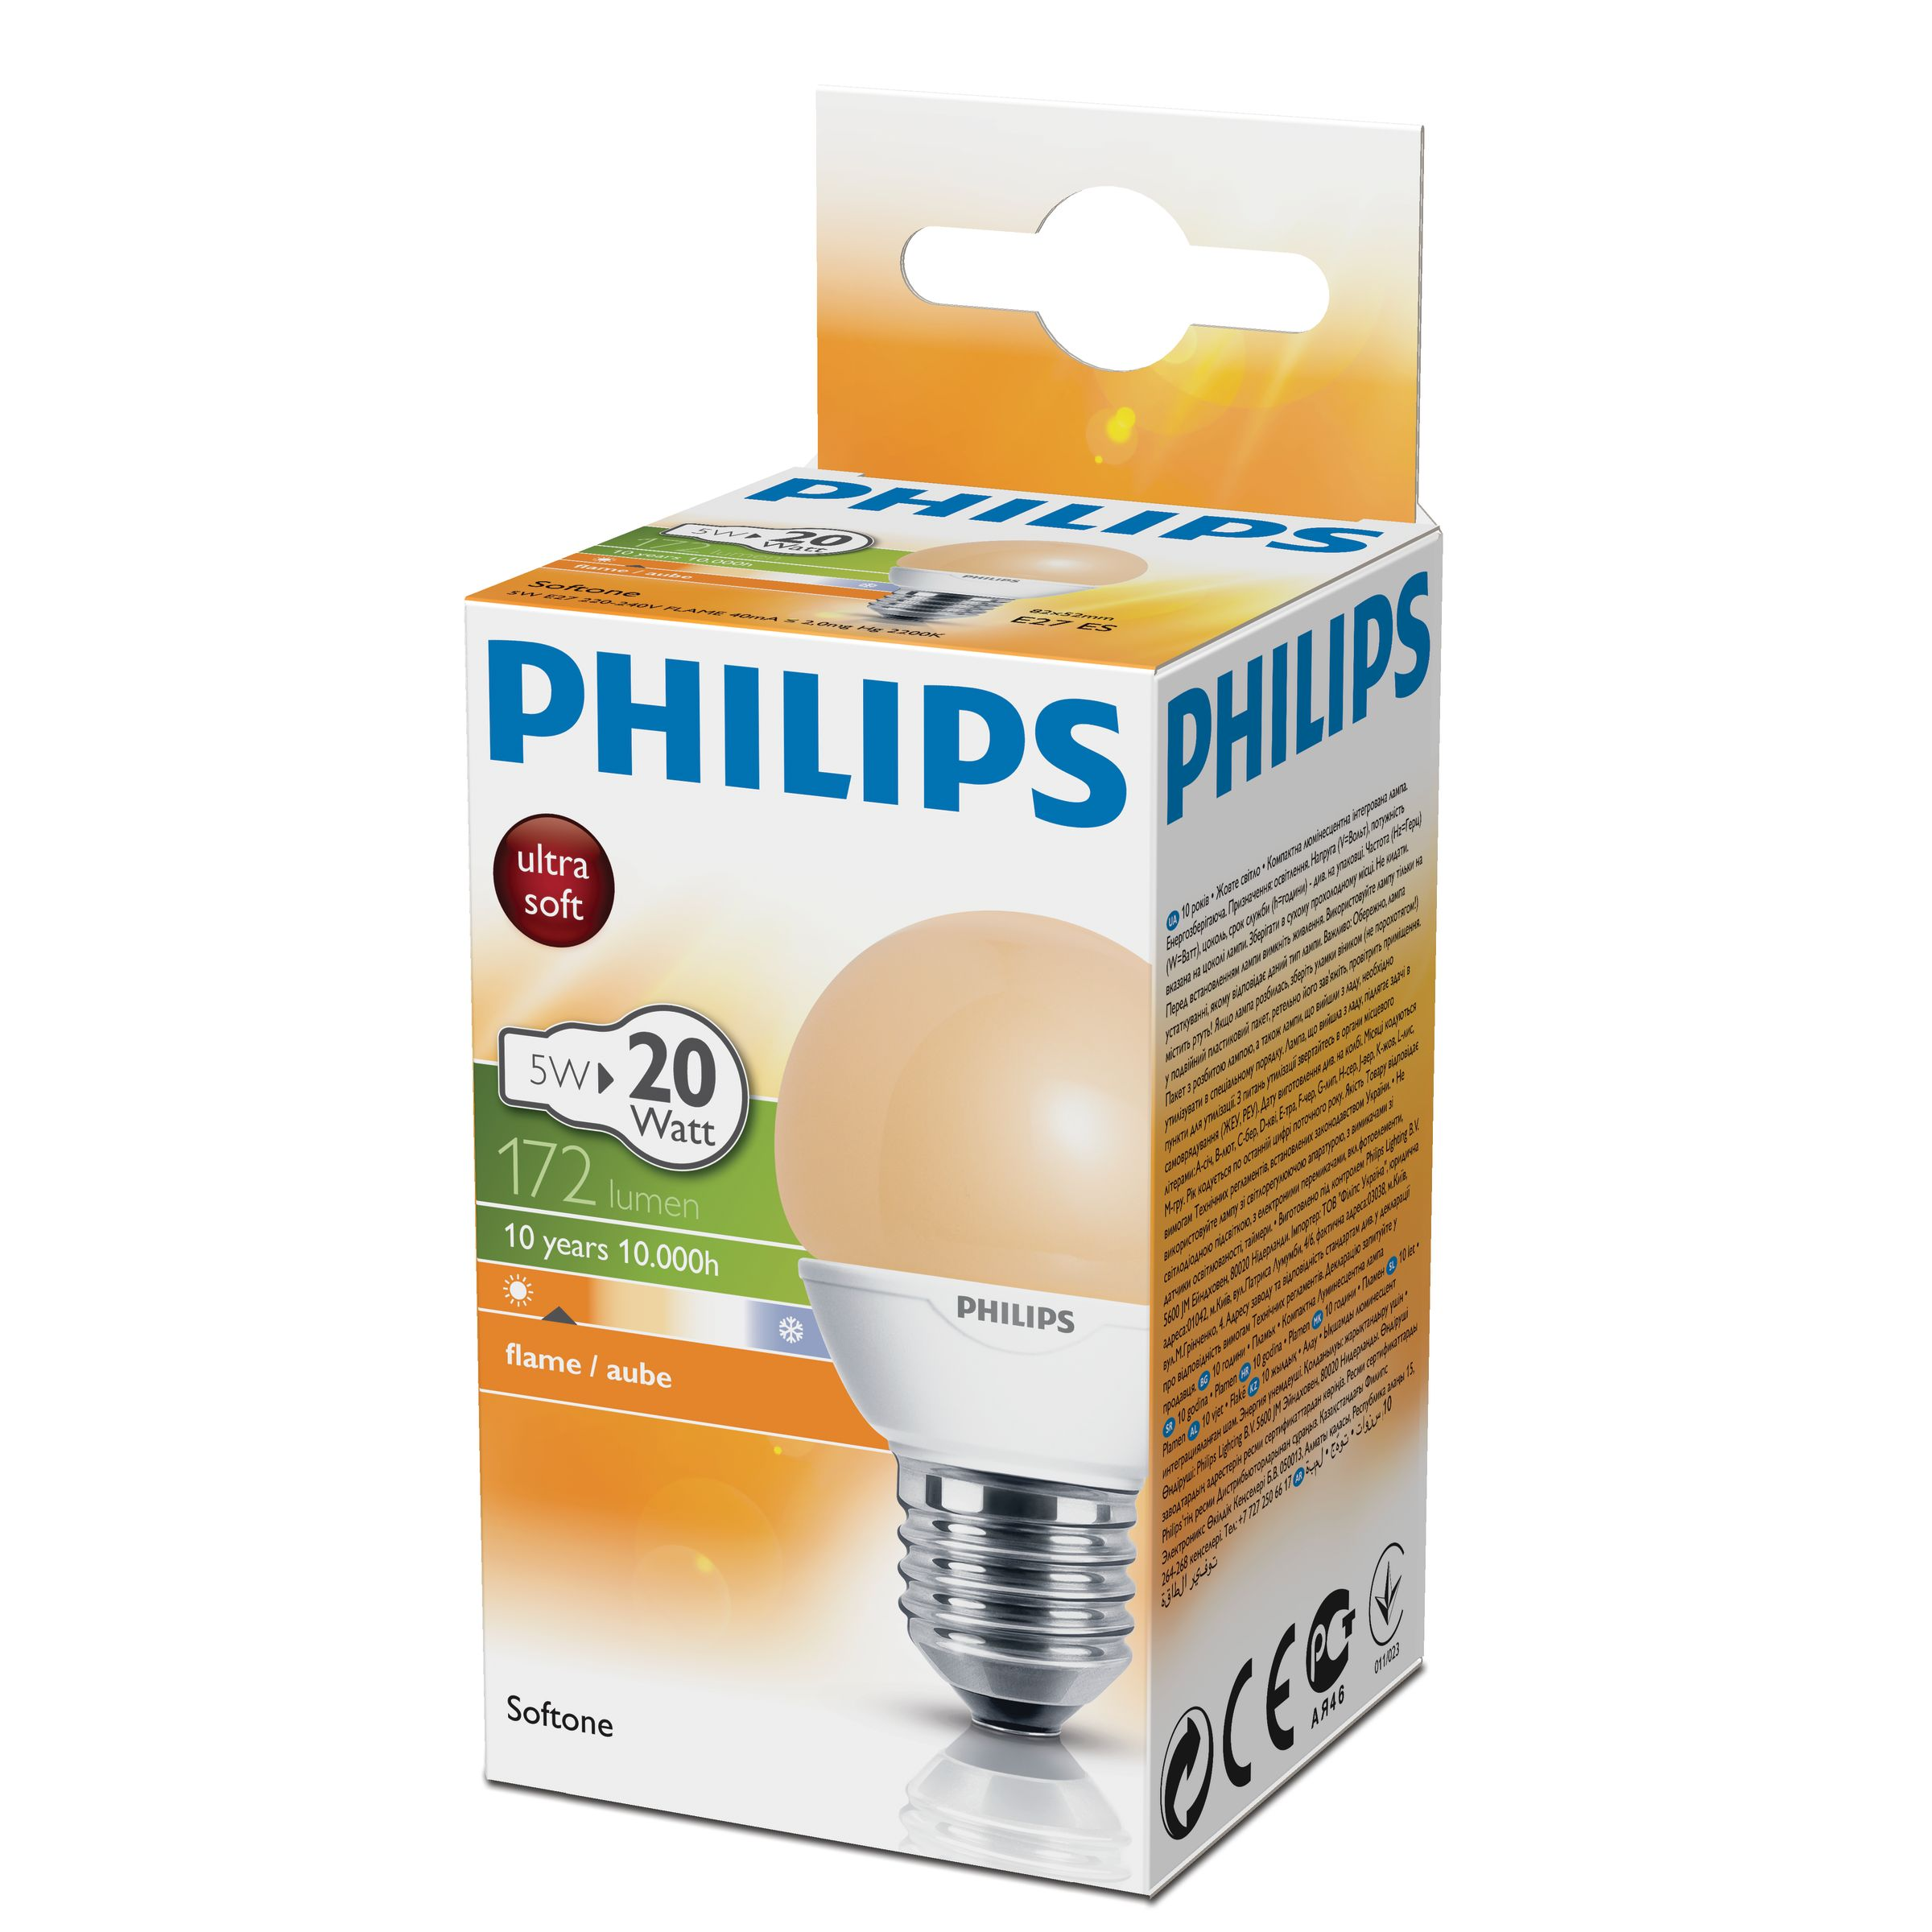 Philips Softone Flame Specs Philips Softone Luster Energy Saving Bulb 8727900905243